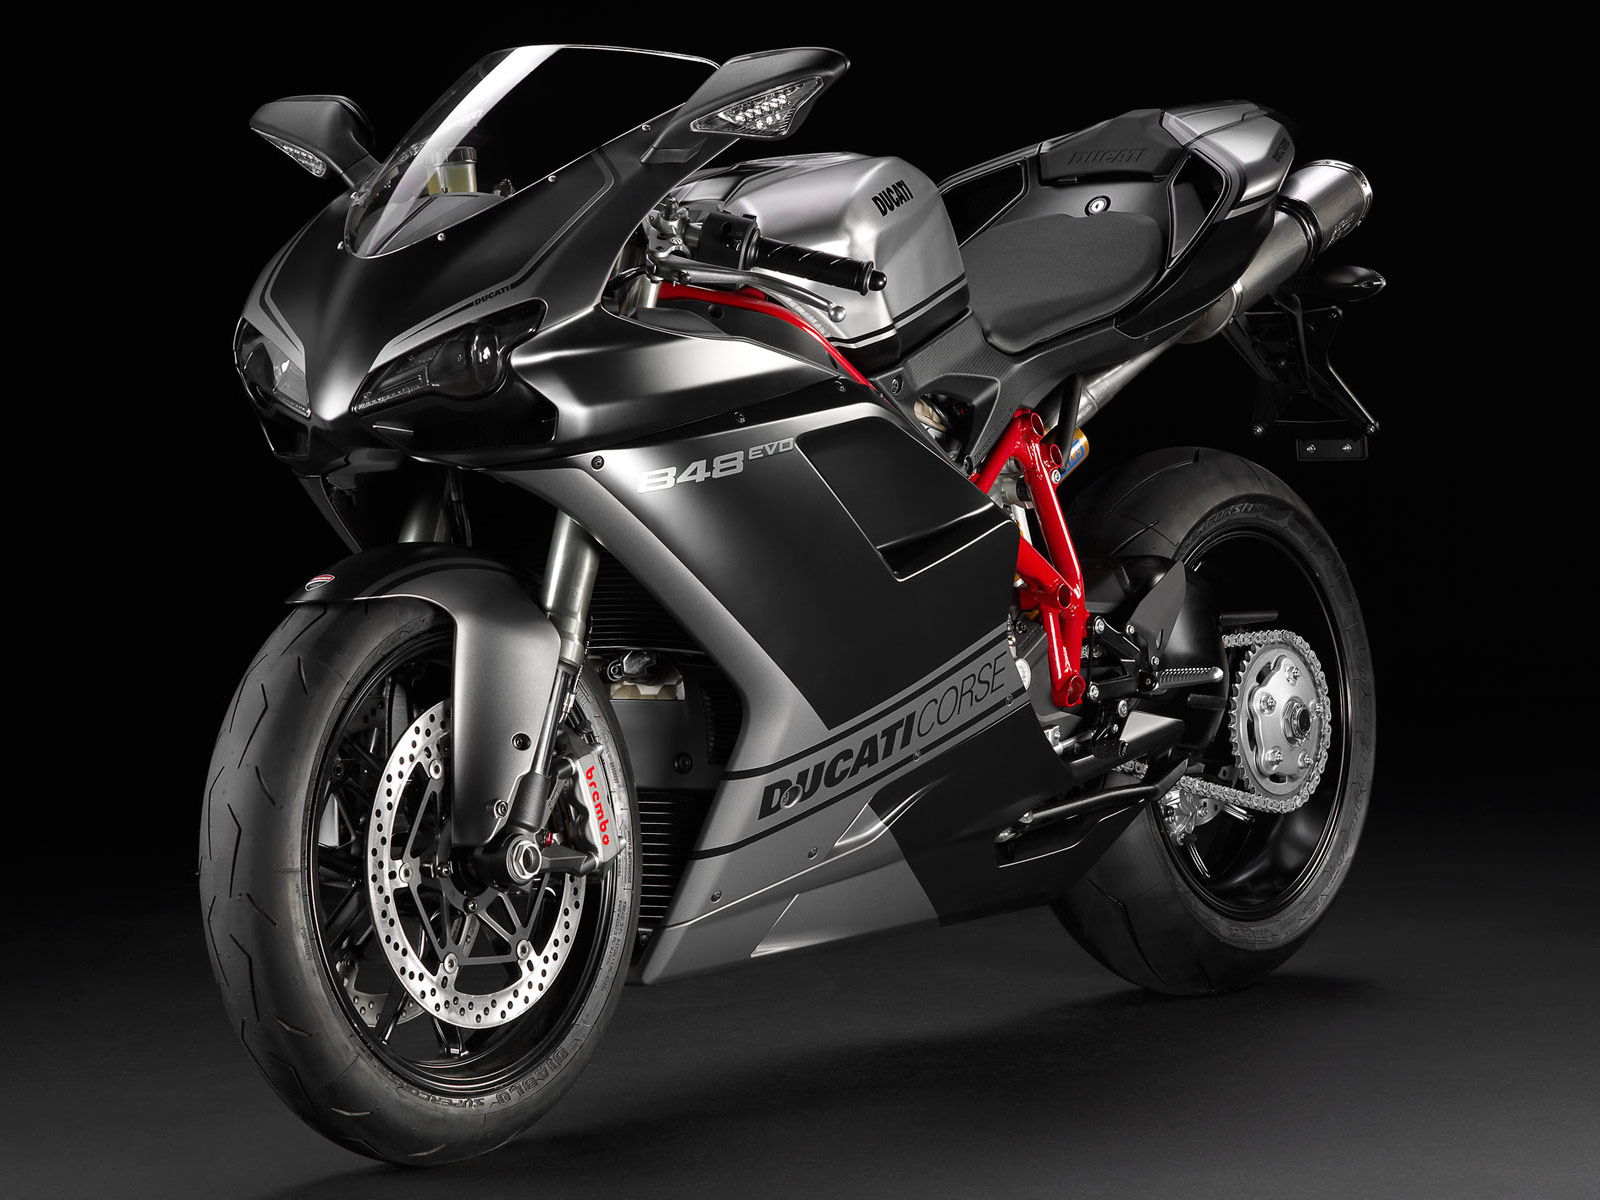 superbike 848 evo corse se 2013 ducati photos. Black Bedroom Furniture Sets. Home Design Ideas